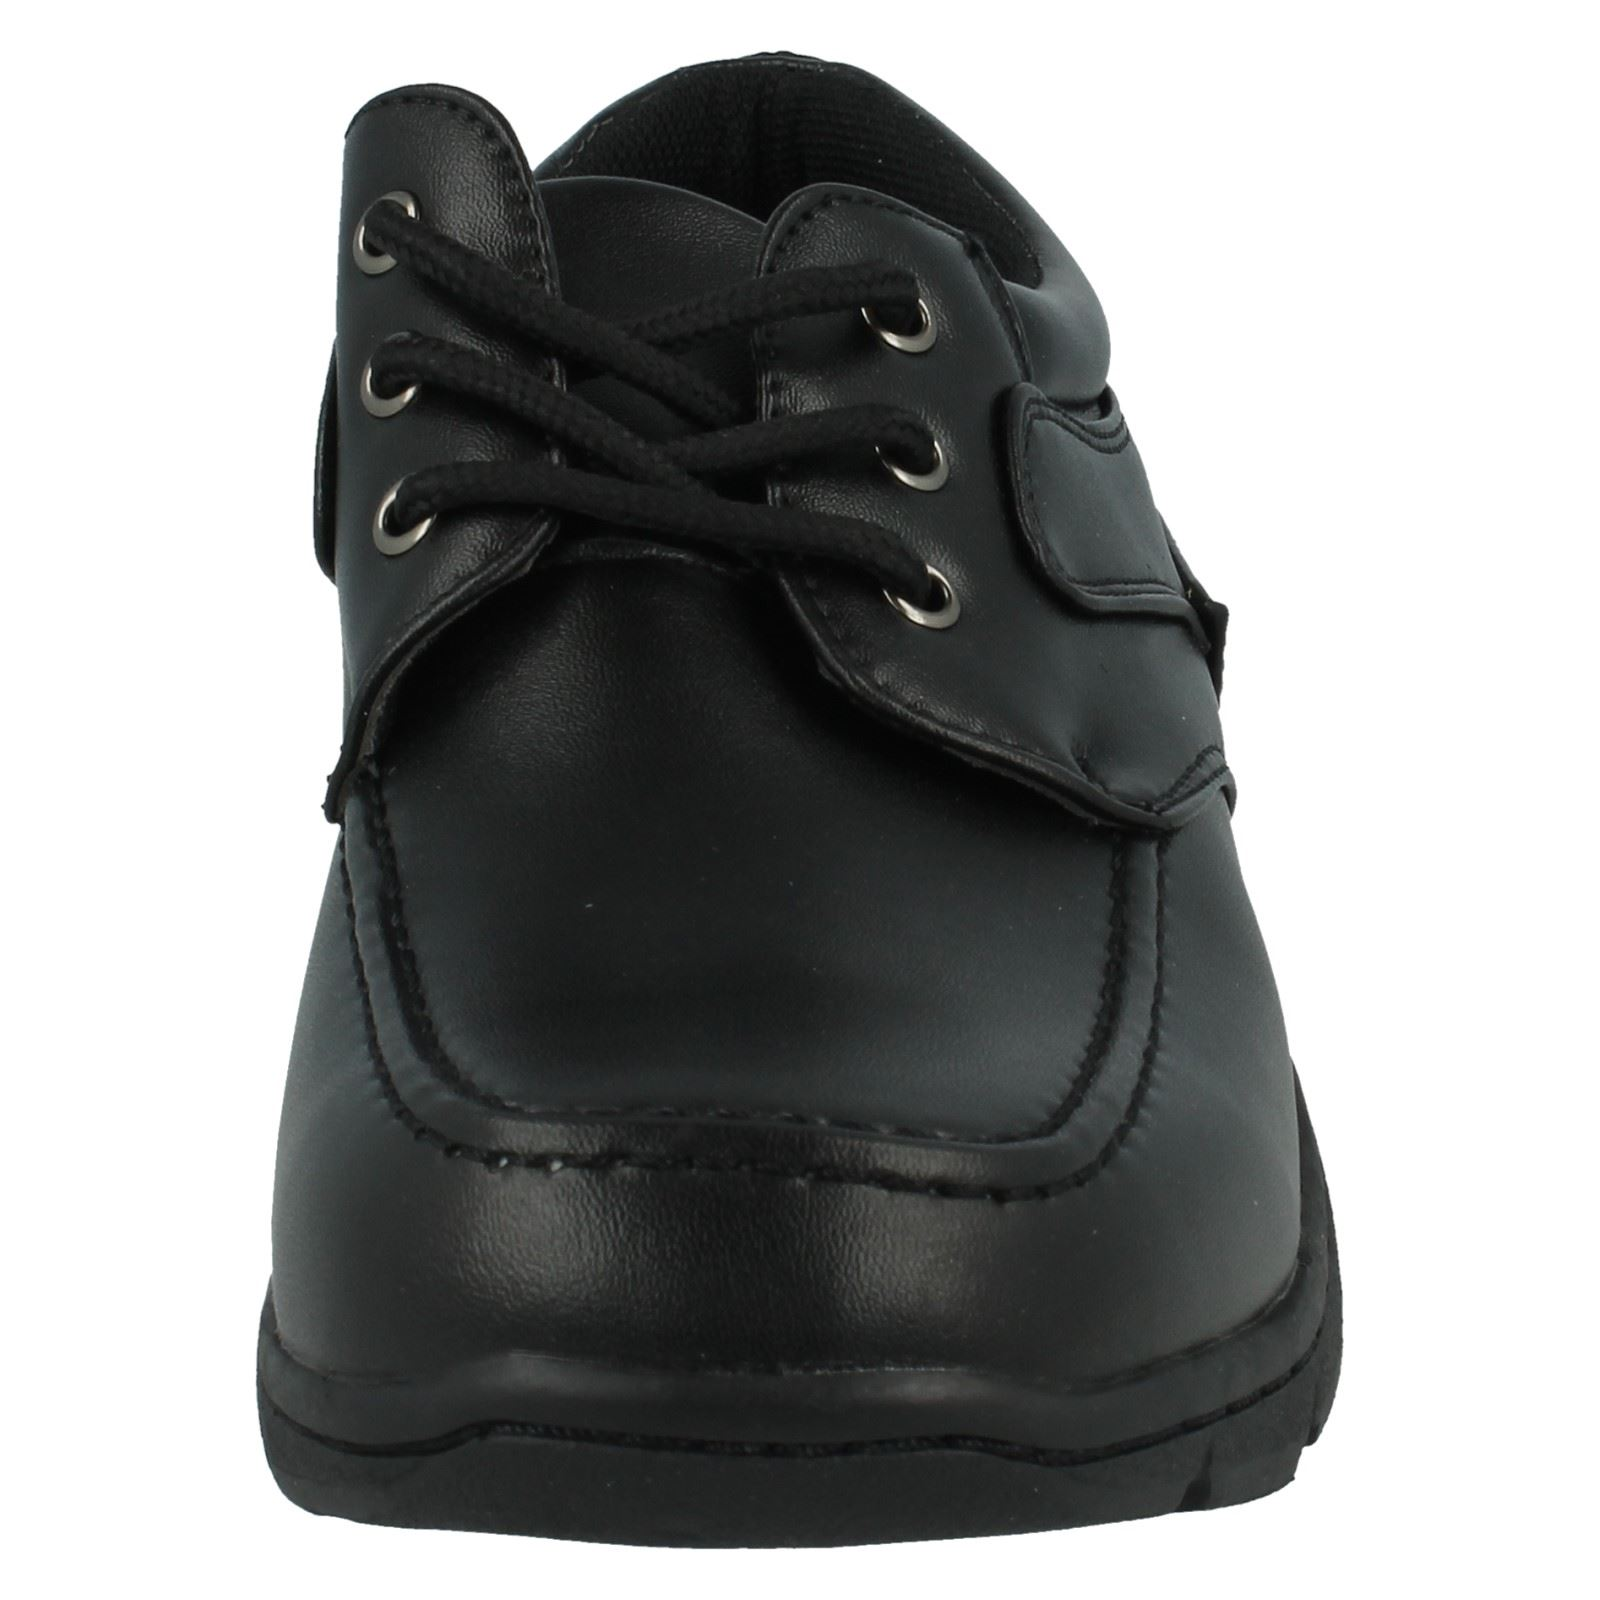 Cool 4 School Boys Lace Up School Shoes N1094